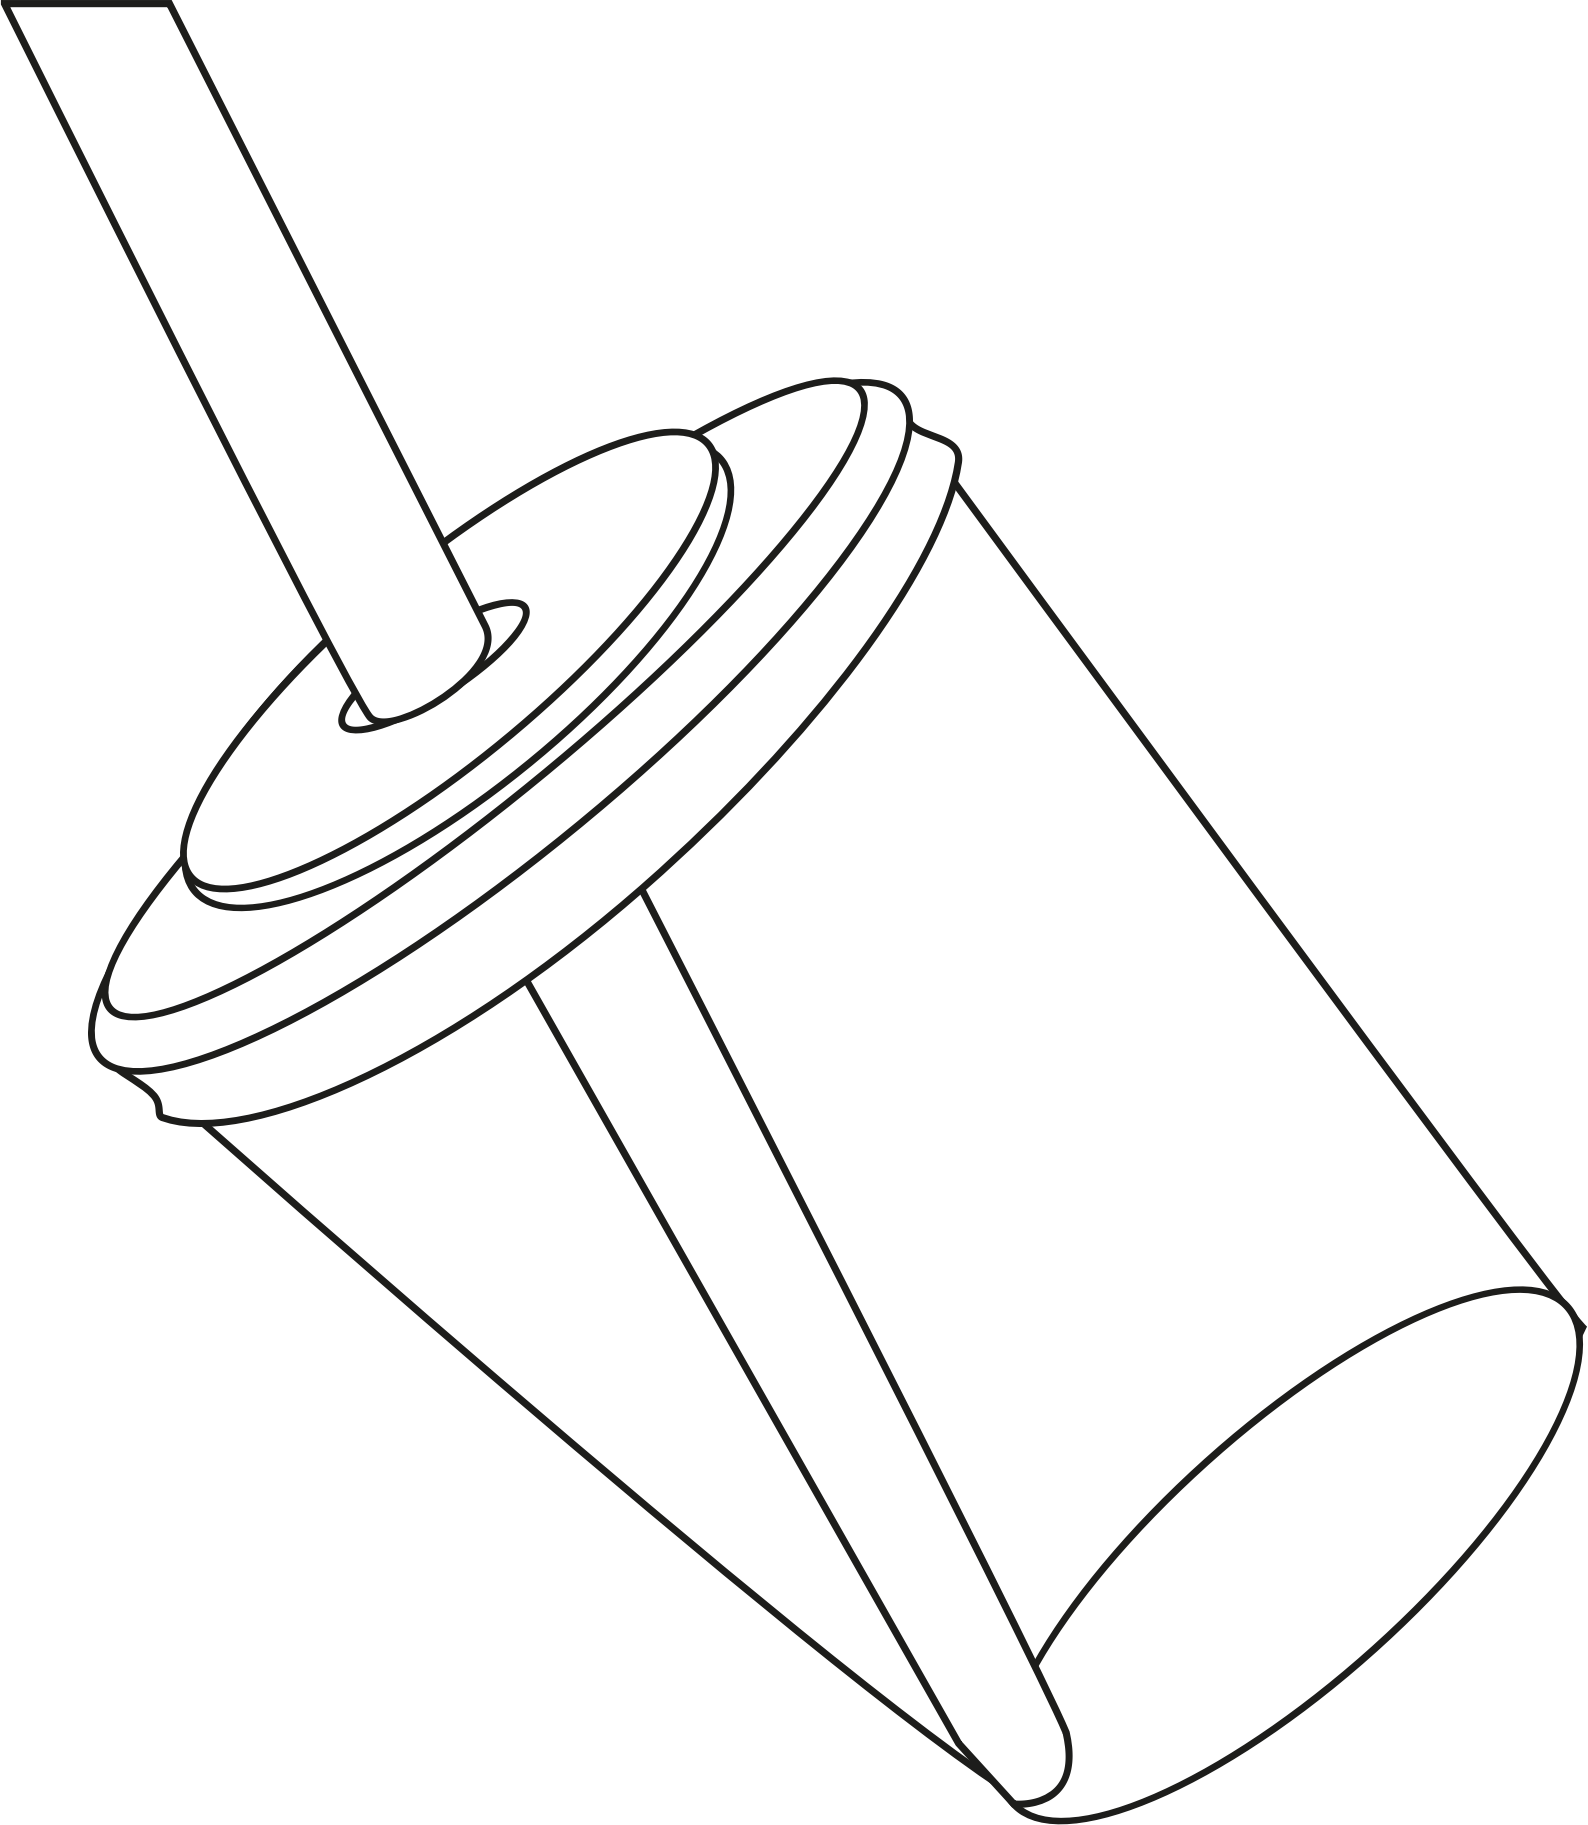 Drinks clipart straw, Drinks straw Transparent FREE for.